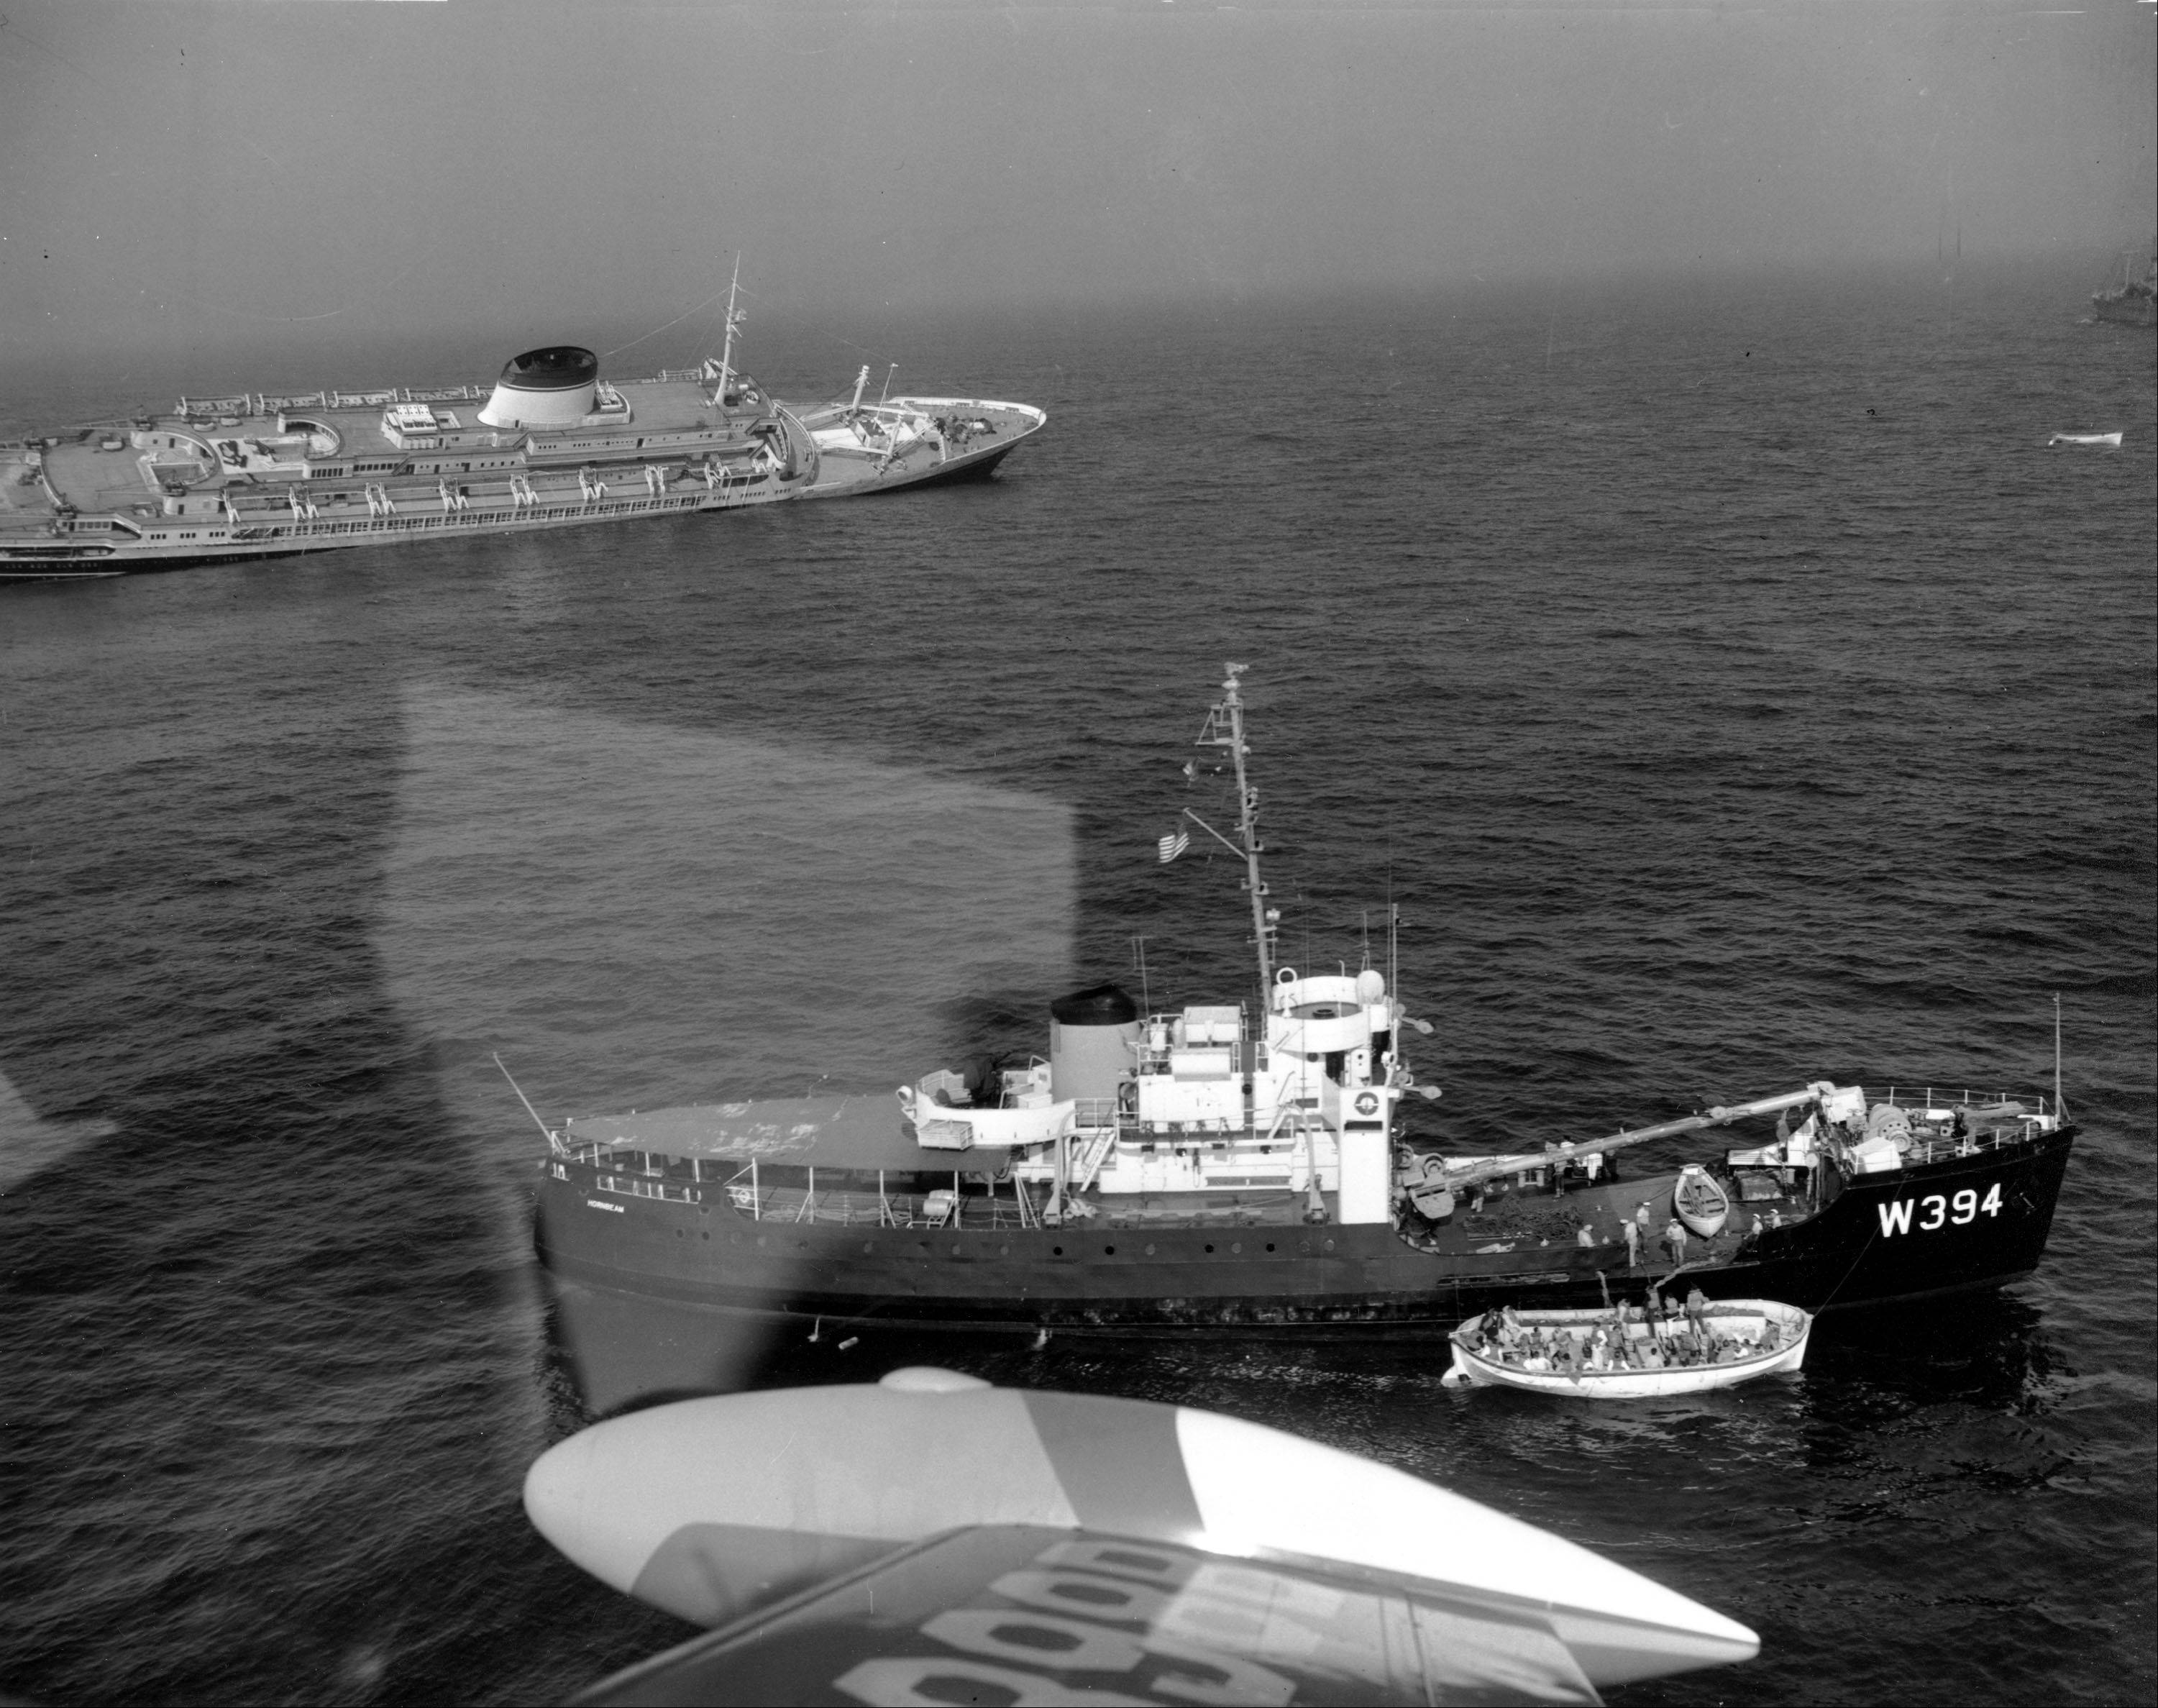 A lifeboat of passengers is alongside a rescue vessel as the liner Andrea Doria sinks in the background on July 26, 1956. The Italian liner collided with the Swedish liner Stockholm off Nantucket Island, Ma. The reflection in center is halation from the plane window through which this photograph was taken.